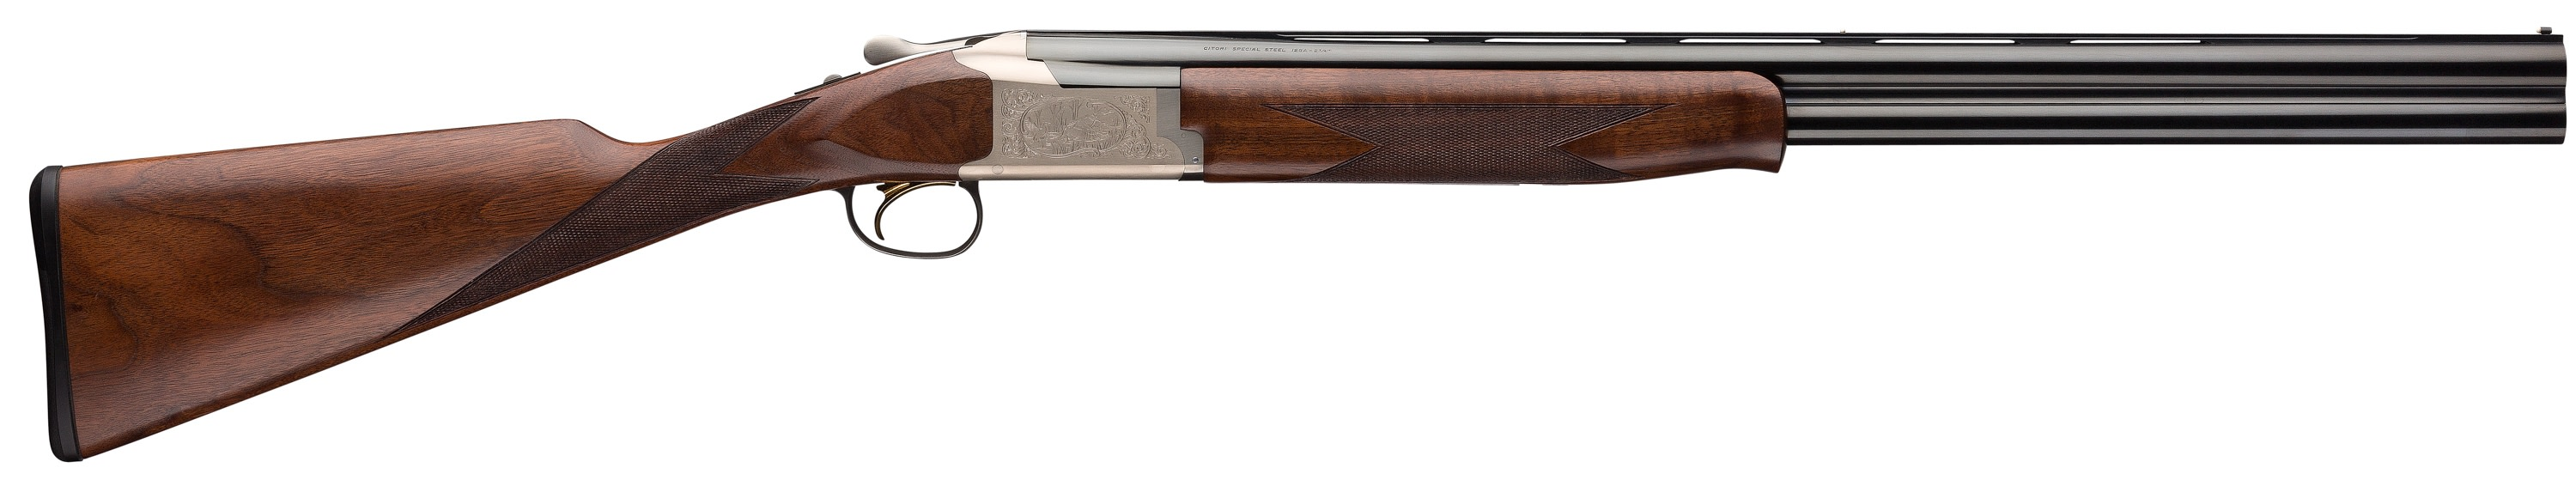 Browning Citori 725 Feather Superlight Over/Under 2.75'' 20 Gauge 26'' Silver Nitride Aluminum Alloy - Black Walnut